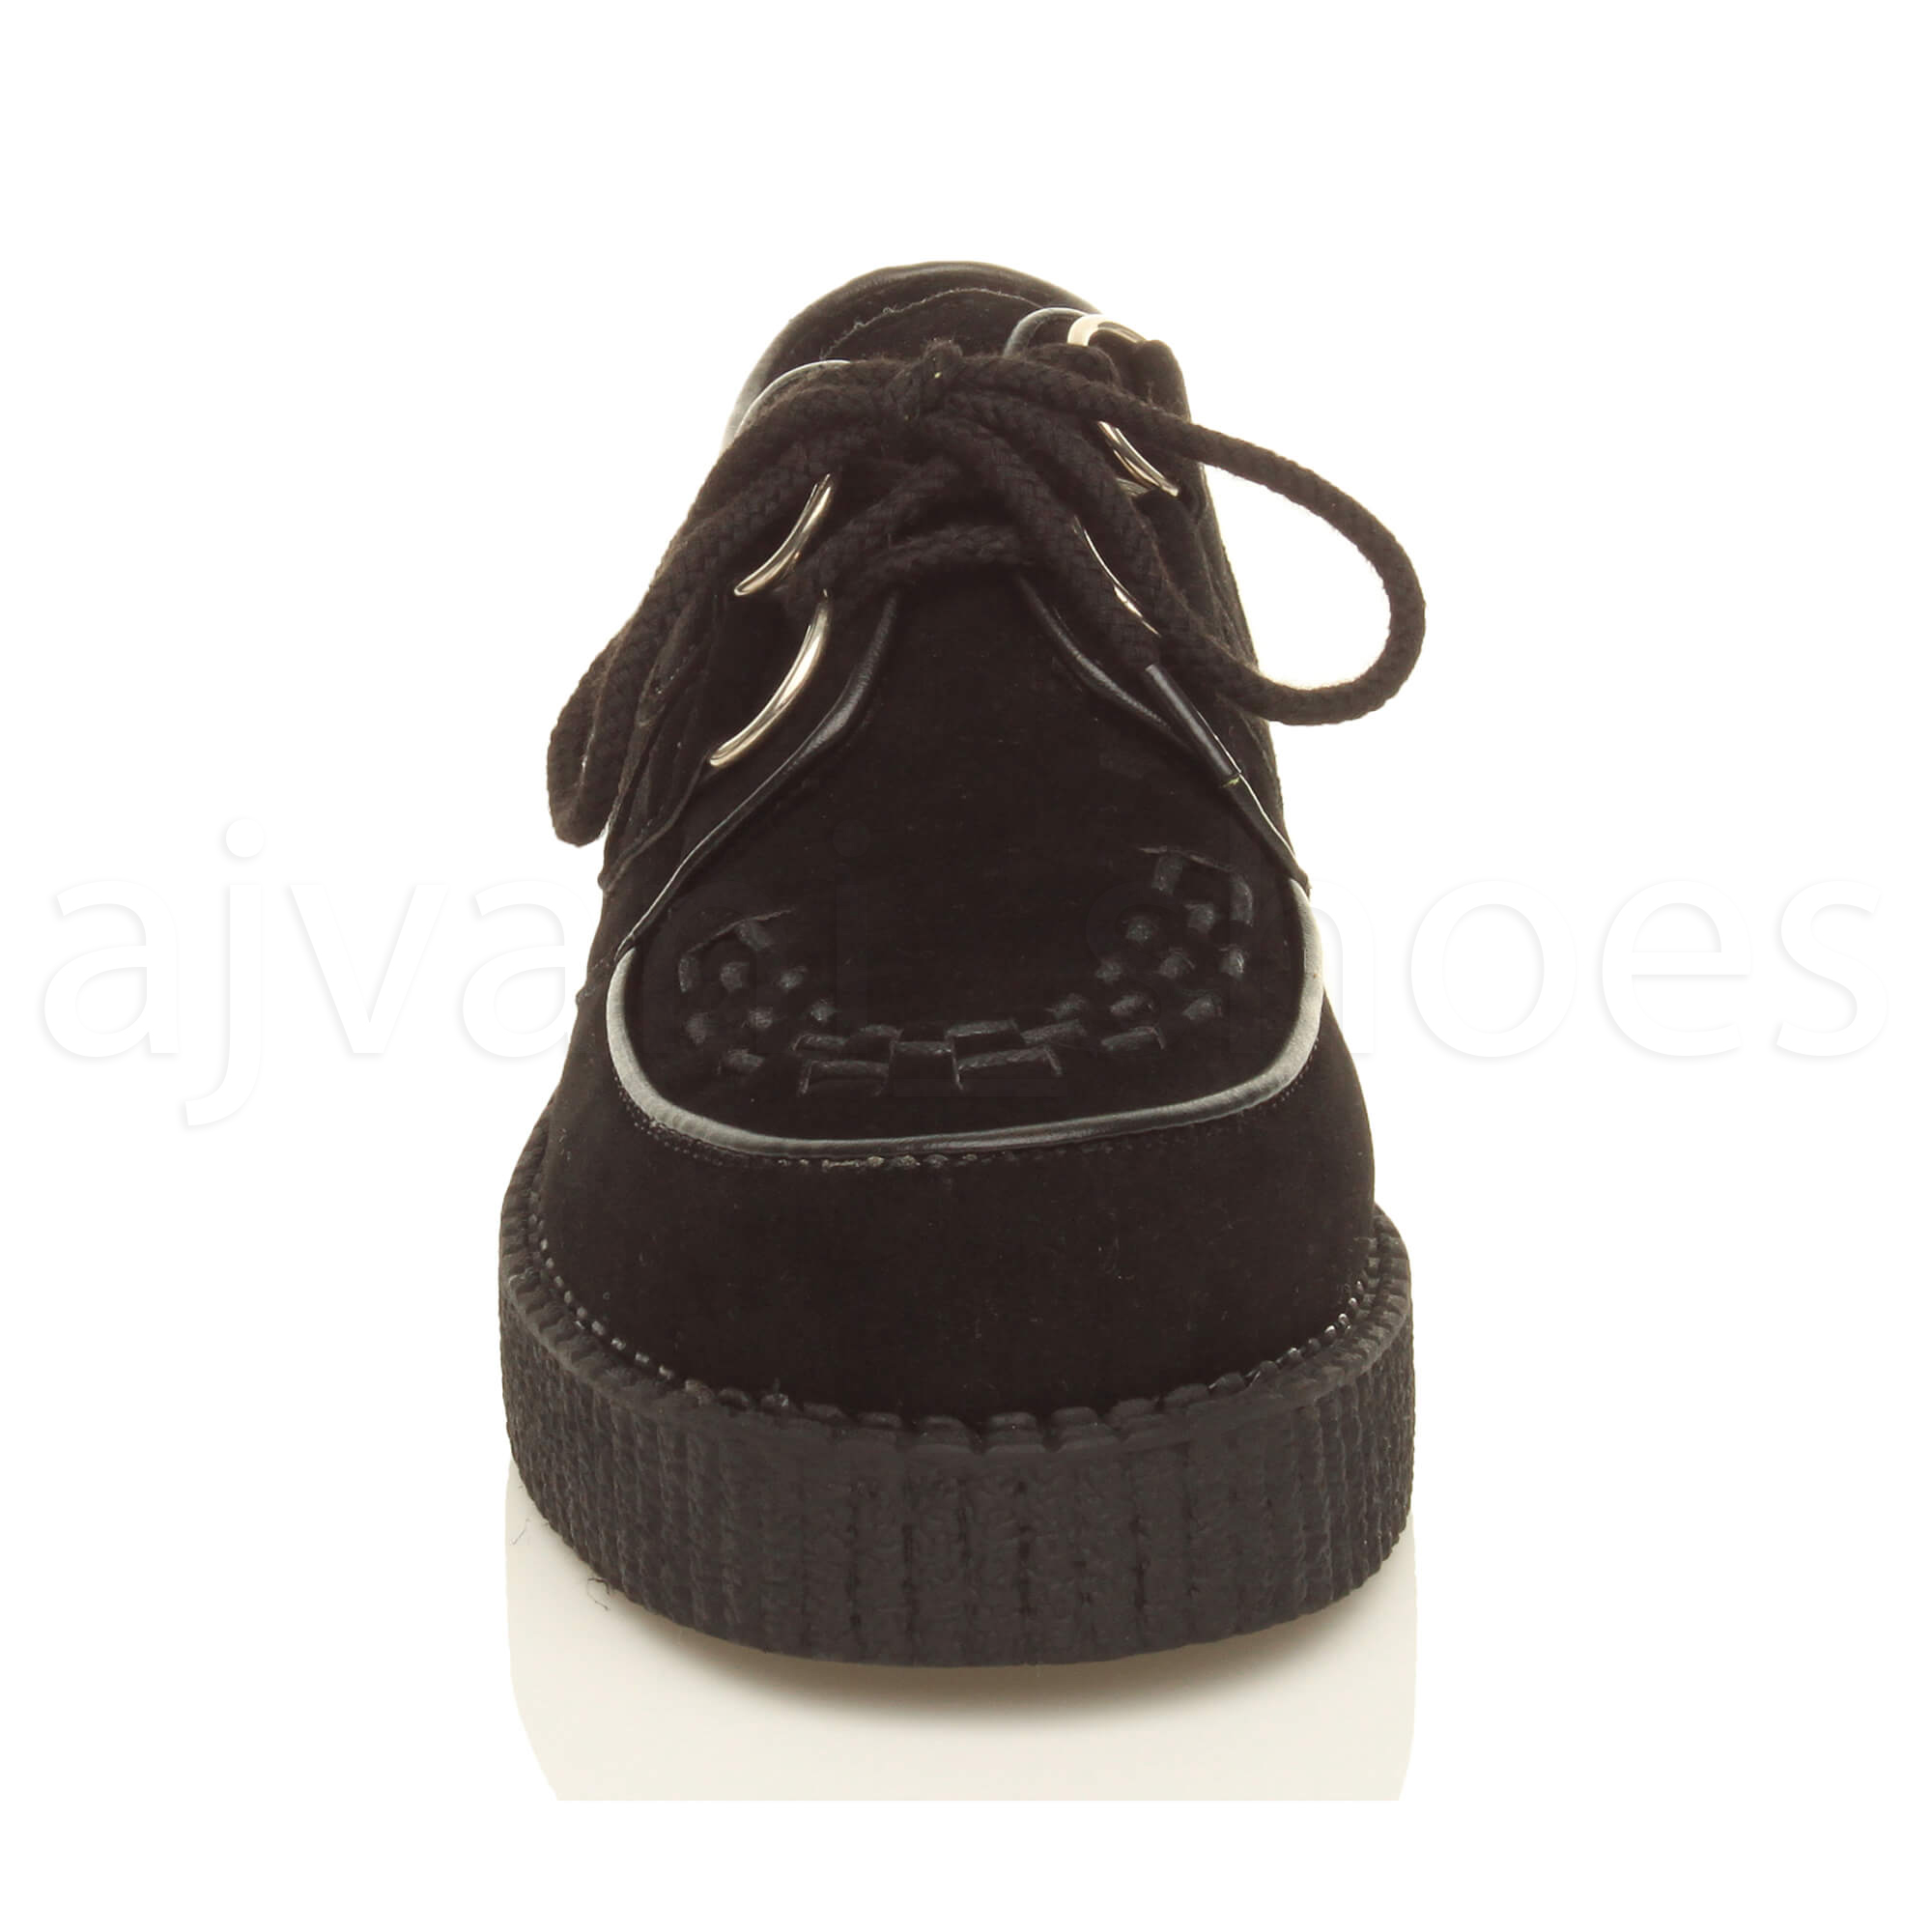 MENS-PLATFORM-WEDGE-LACE-UP-GOTH-PUNK-BROTHEL-CREEPERS-BEETLE-CRUSHERS-SHOES thumbnail 12